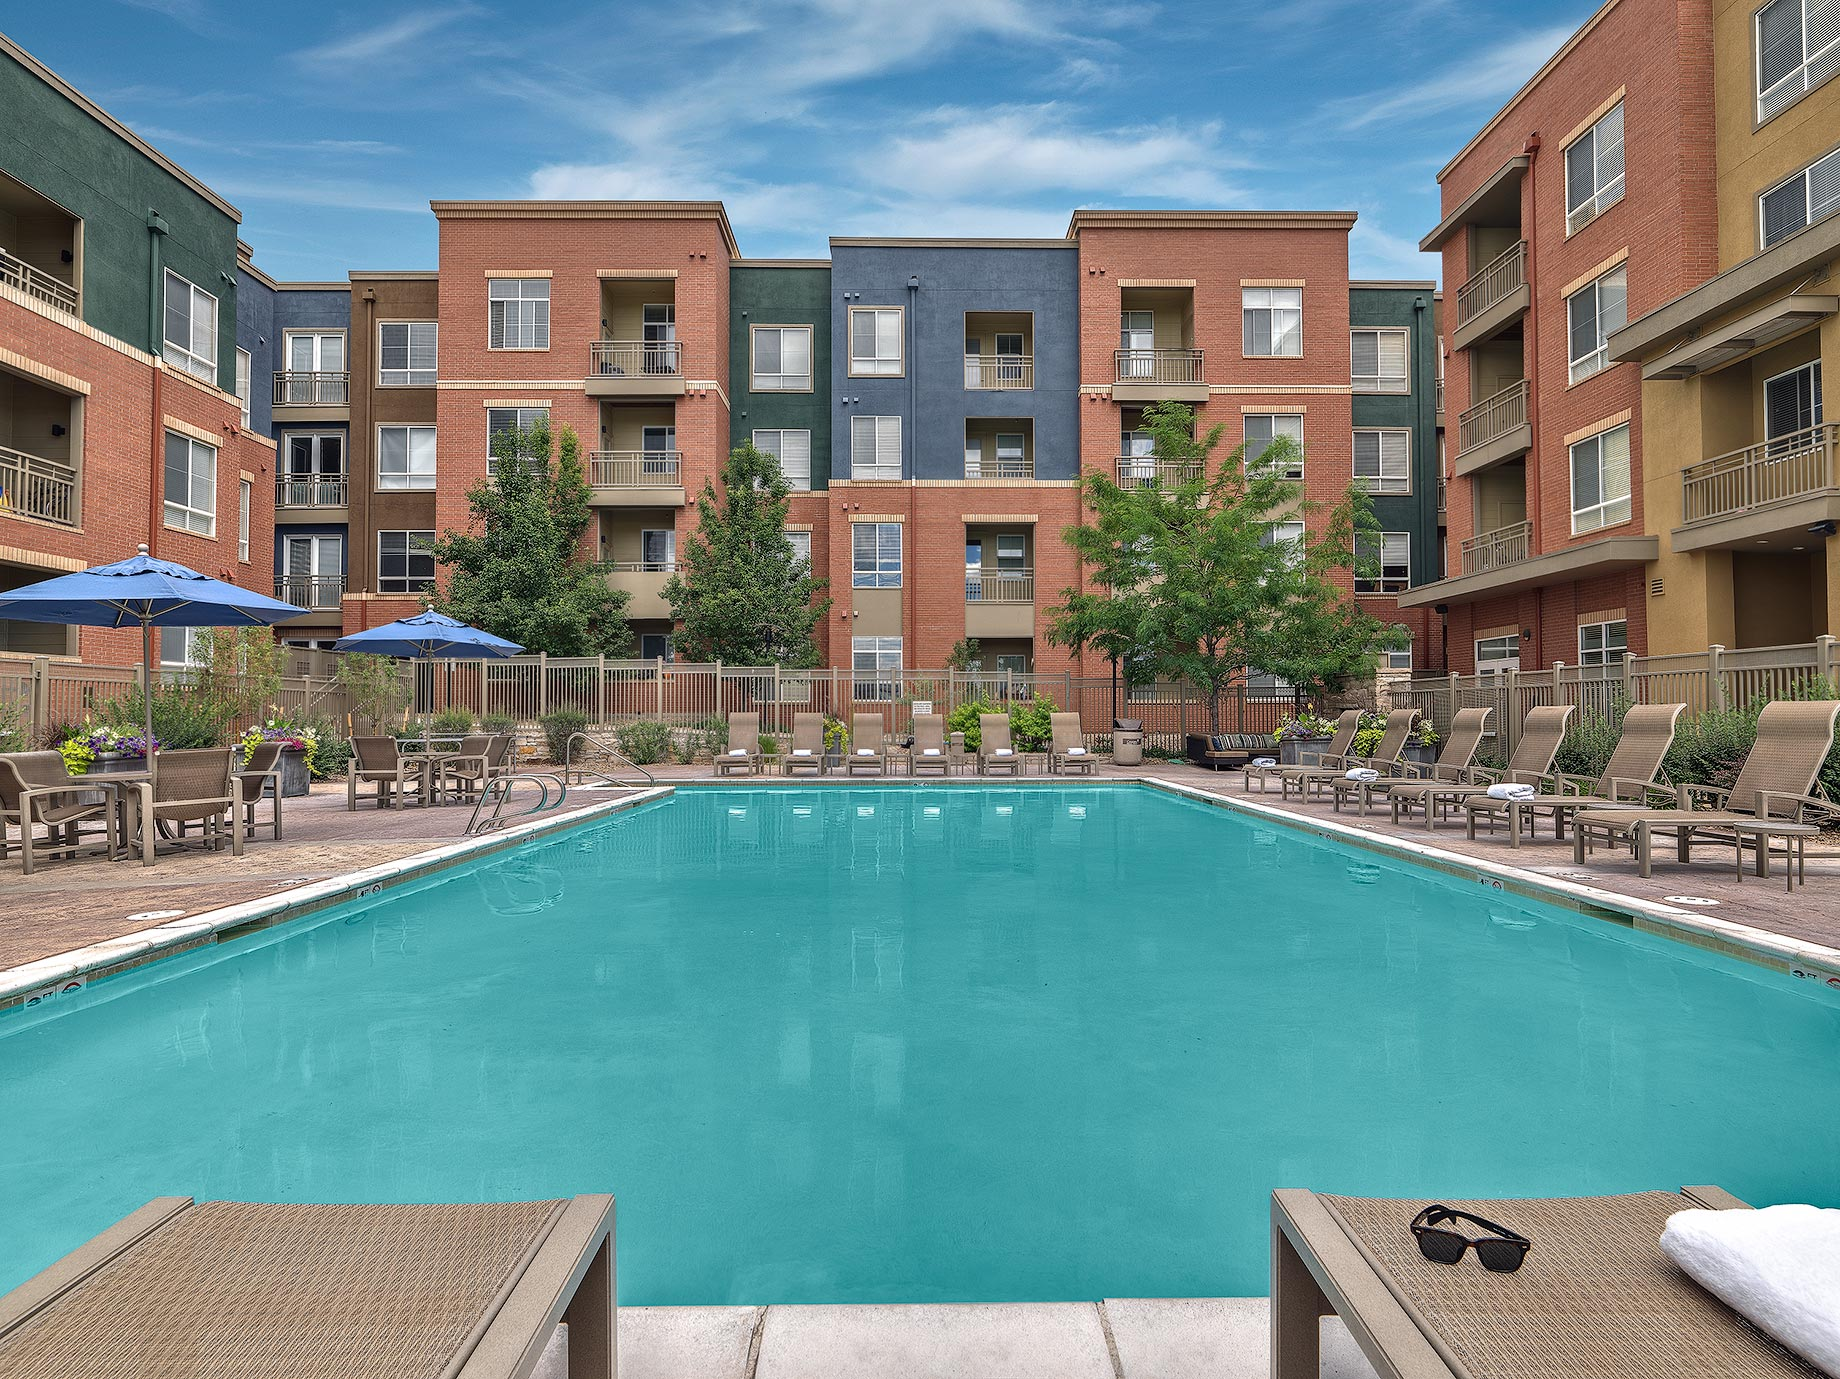 Apartments for Rent in Denver CO Camden Belleview Station